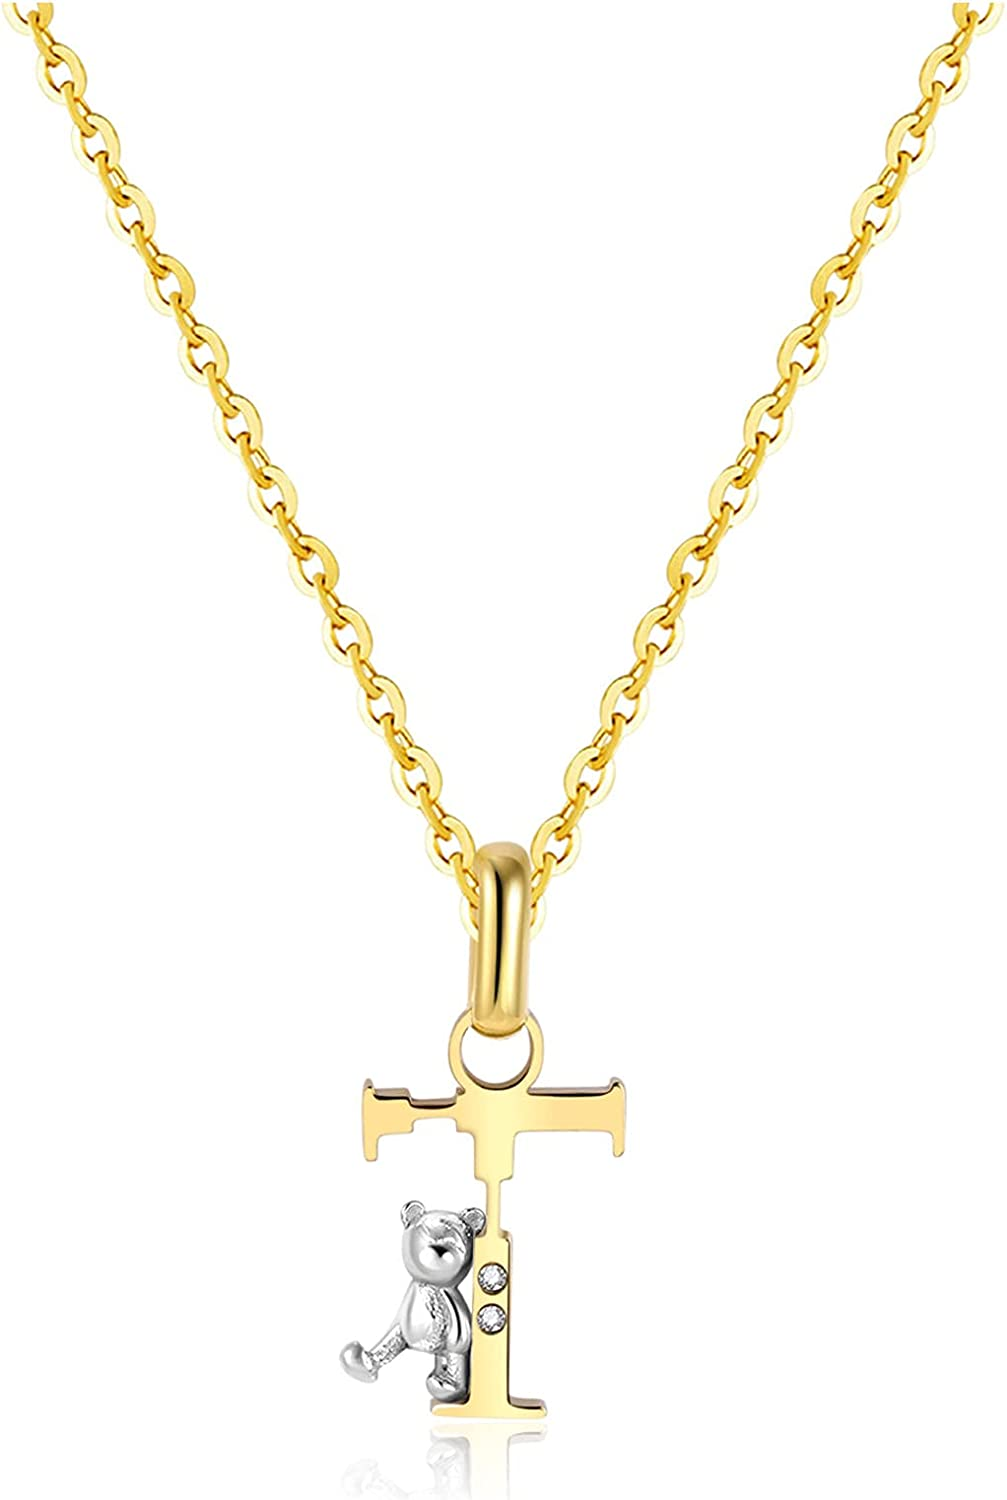 CILILI 18K Gold Filled Initial with Zirconia Seattle Mall Pendant supreme Bear Cubic